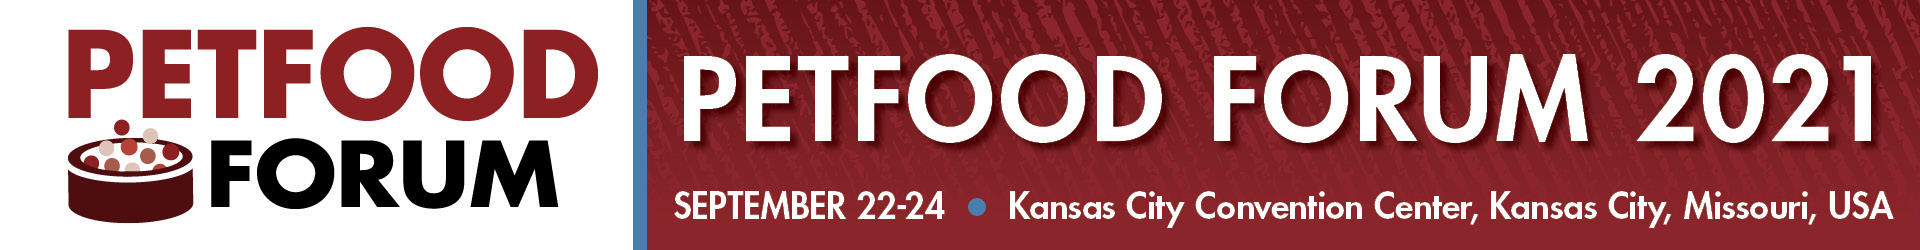 Pet Food Forum 2021 Event Banner